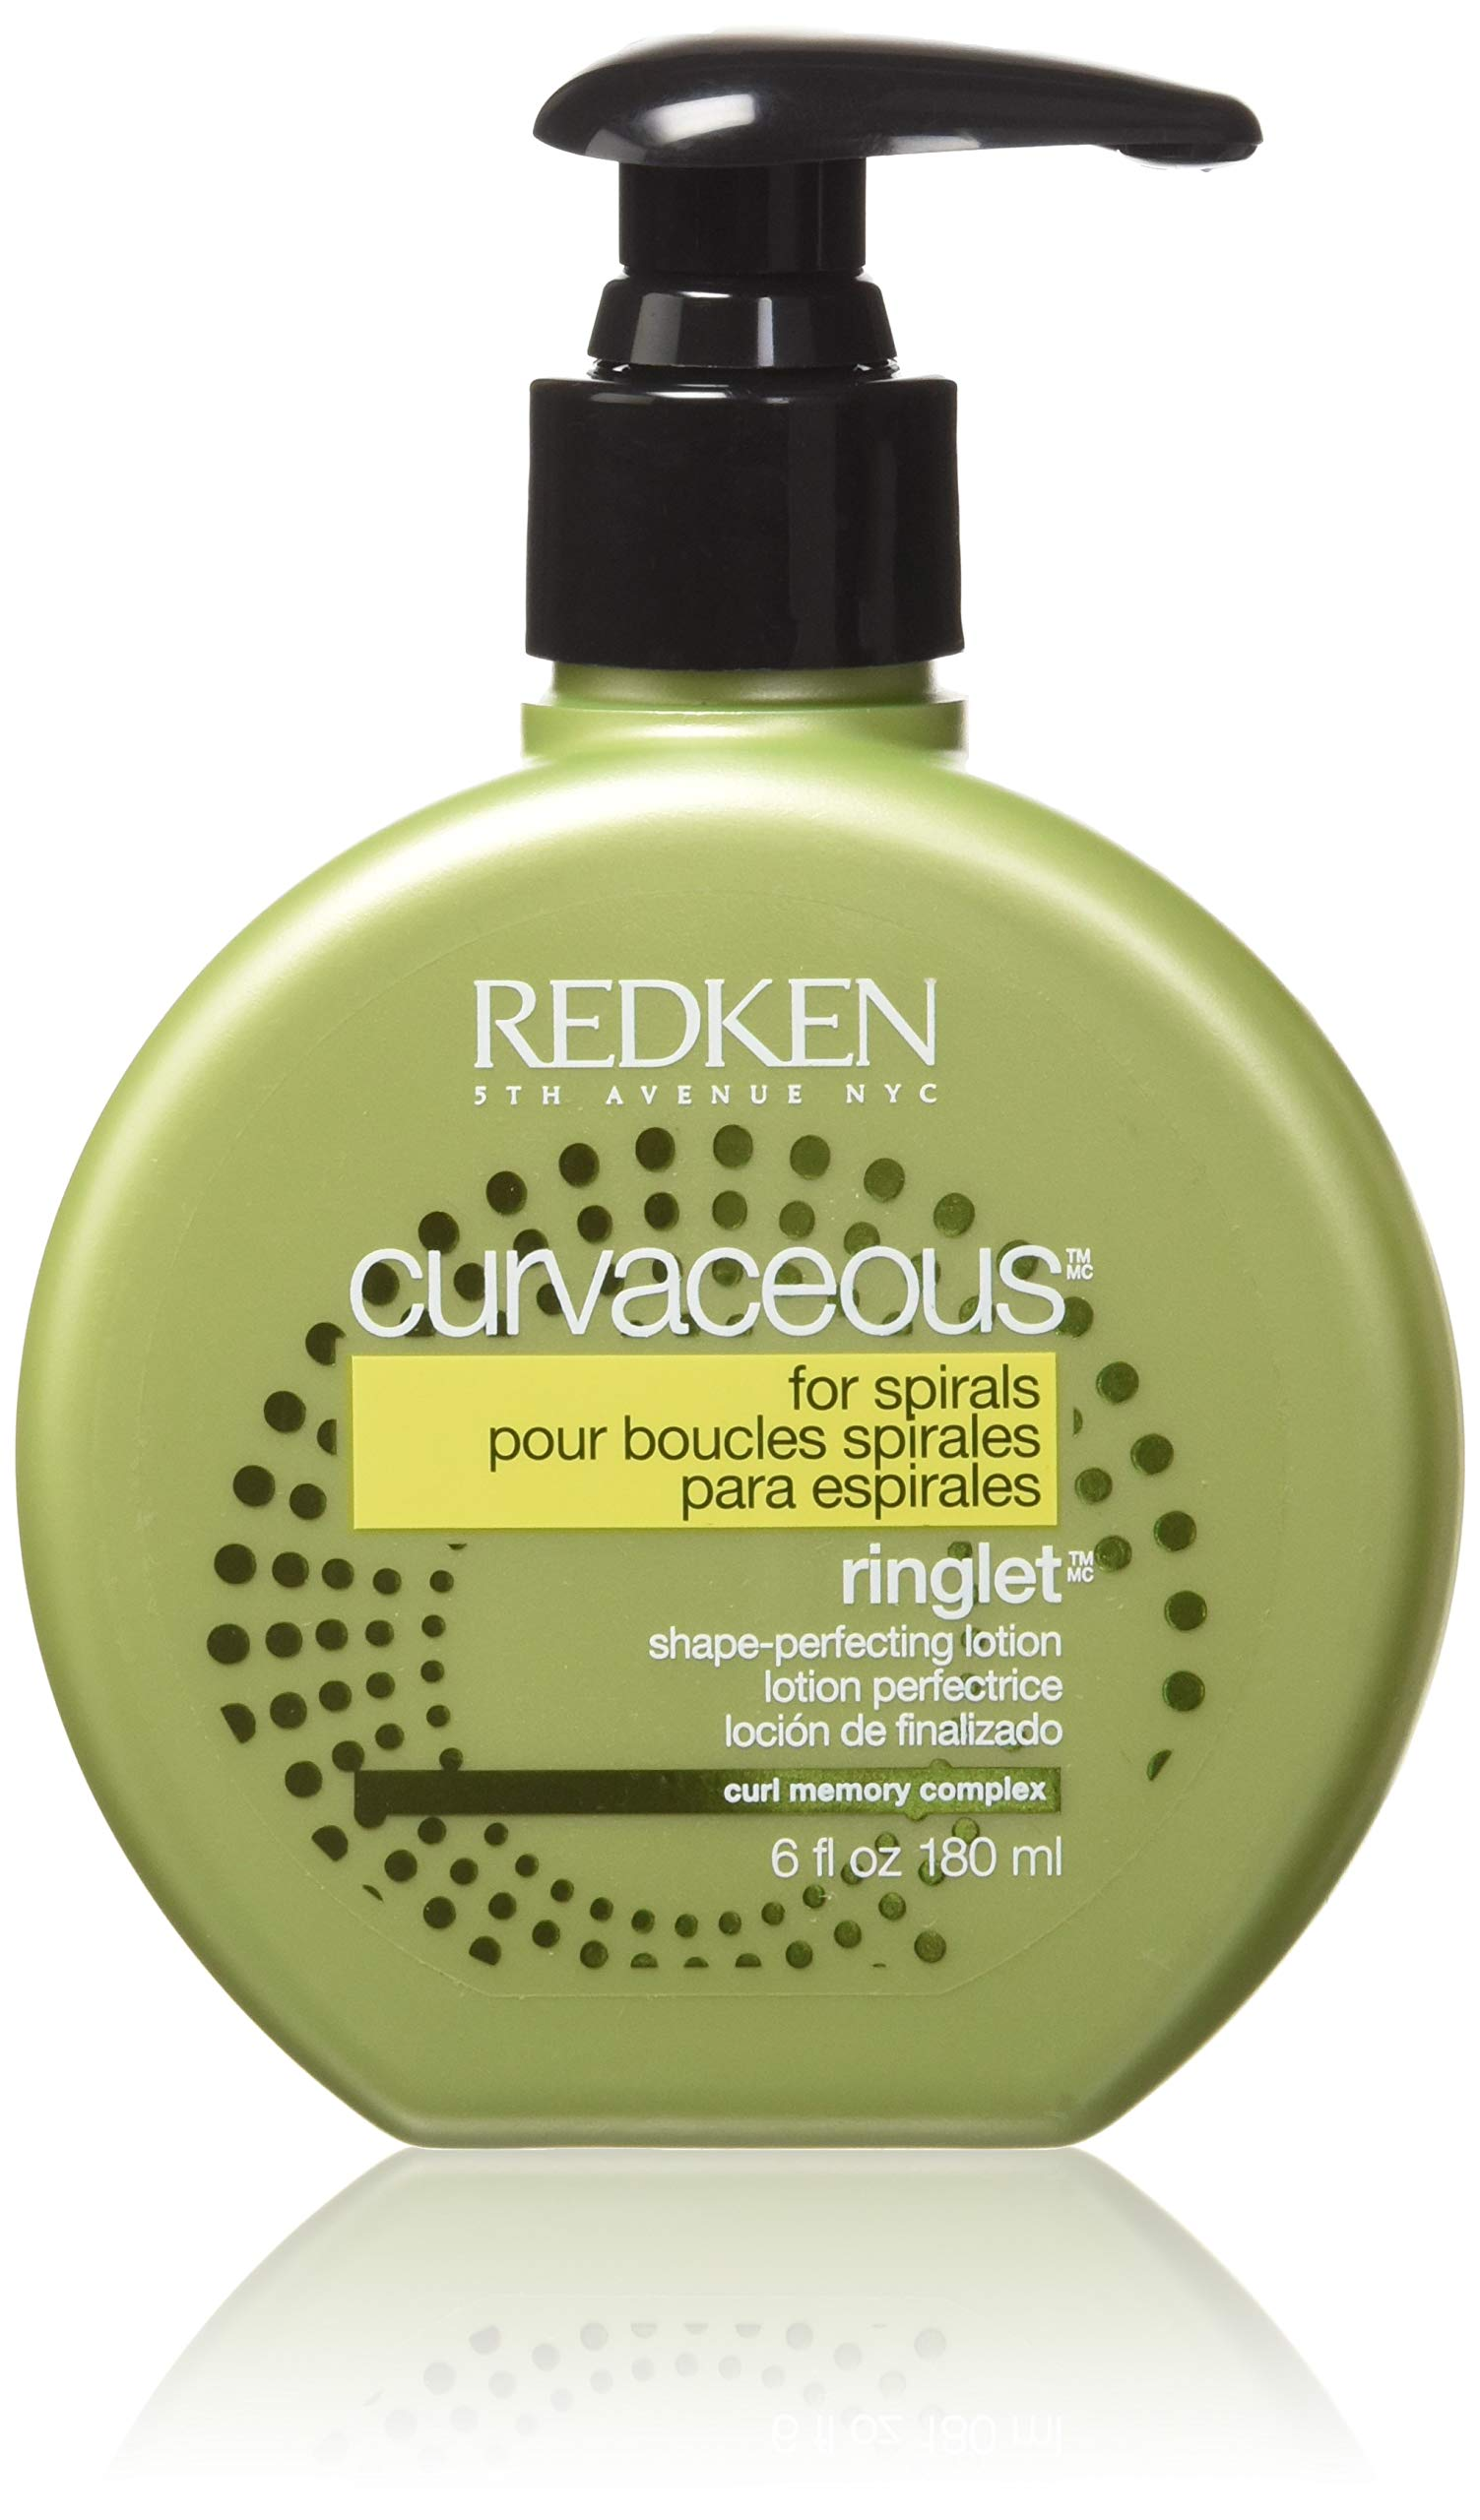 264f5ece3 Redken Curvaceous Ringlet Anti-Frizz Perfecting Hair Treatment Lotion, 6 oz